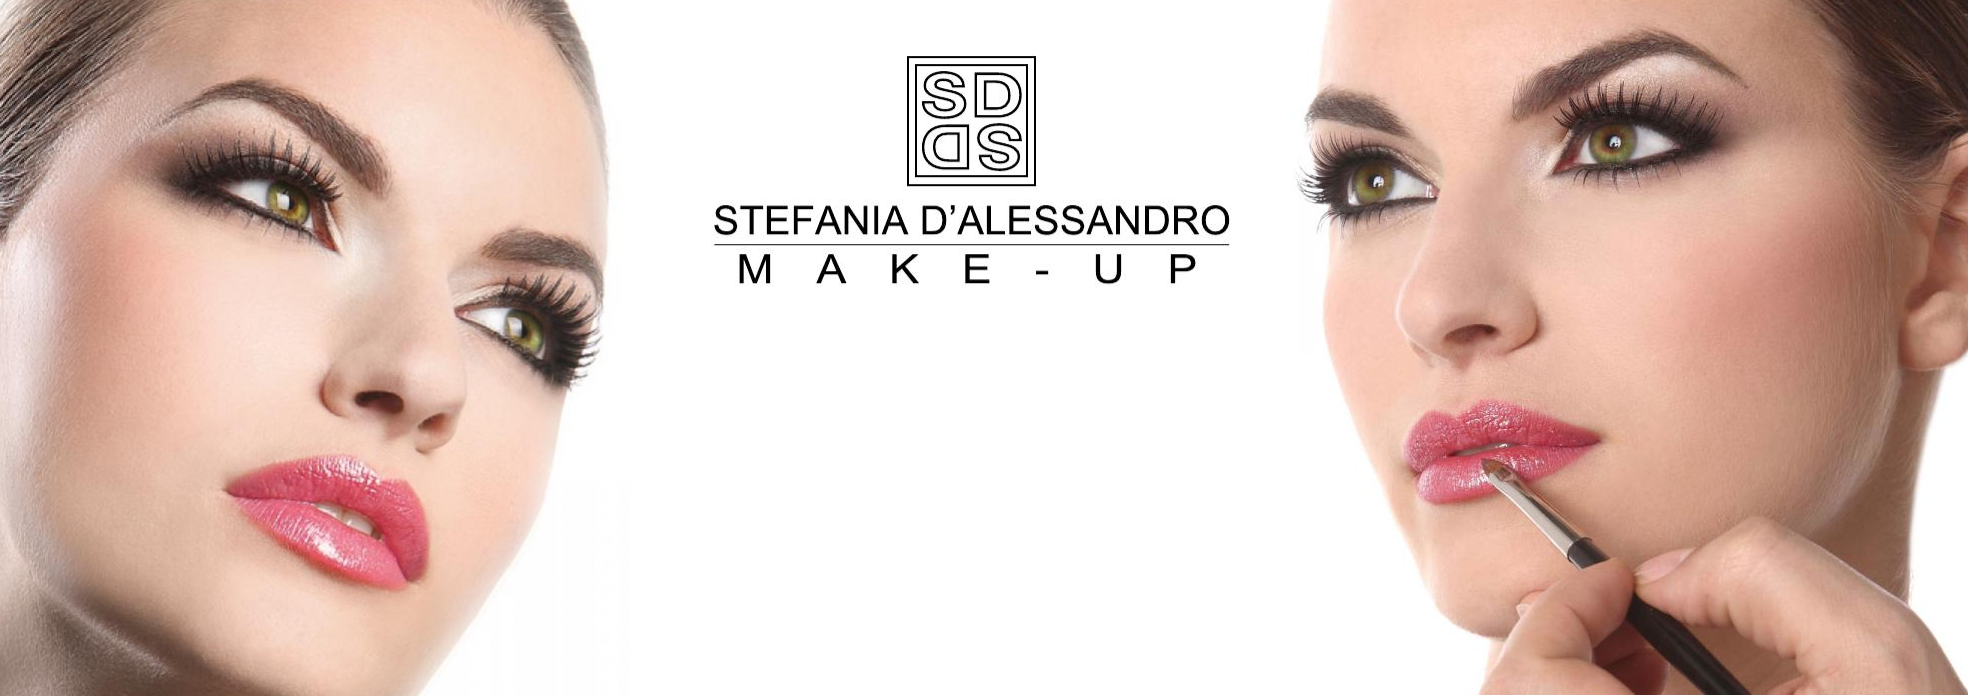 Stefania D'Alessandro Make Up